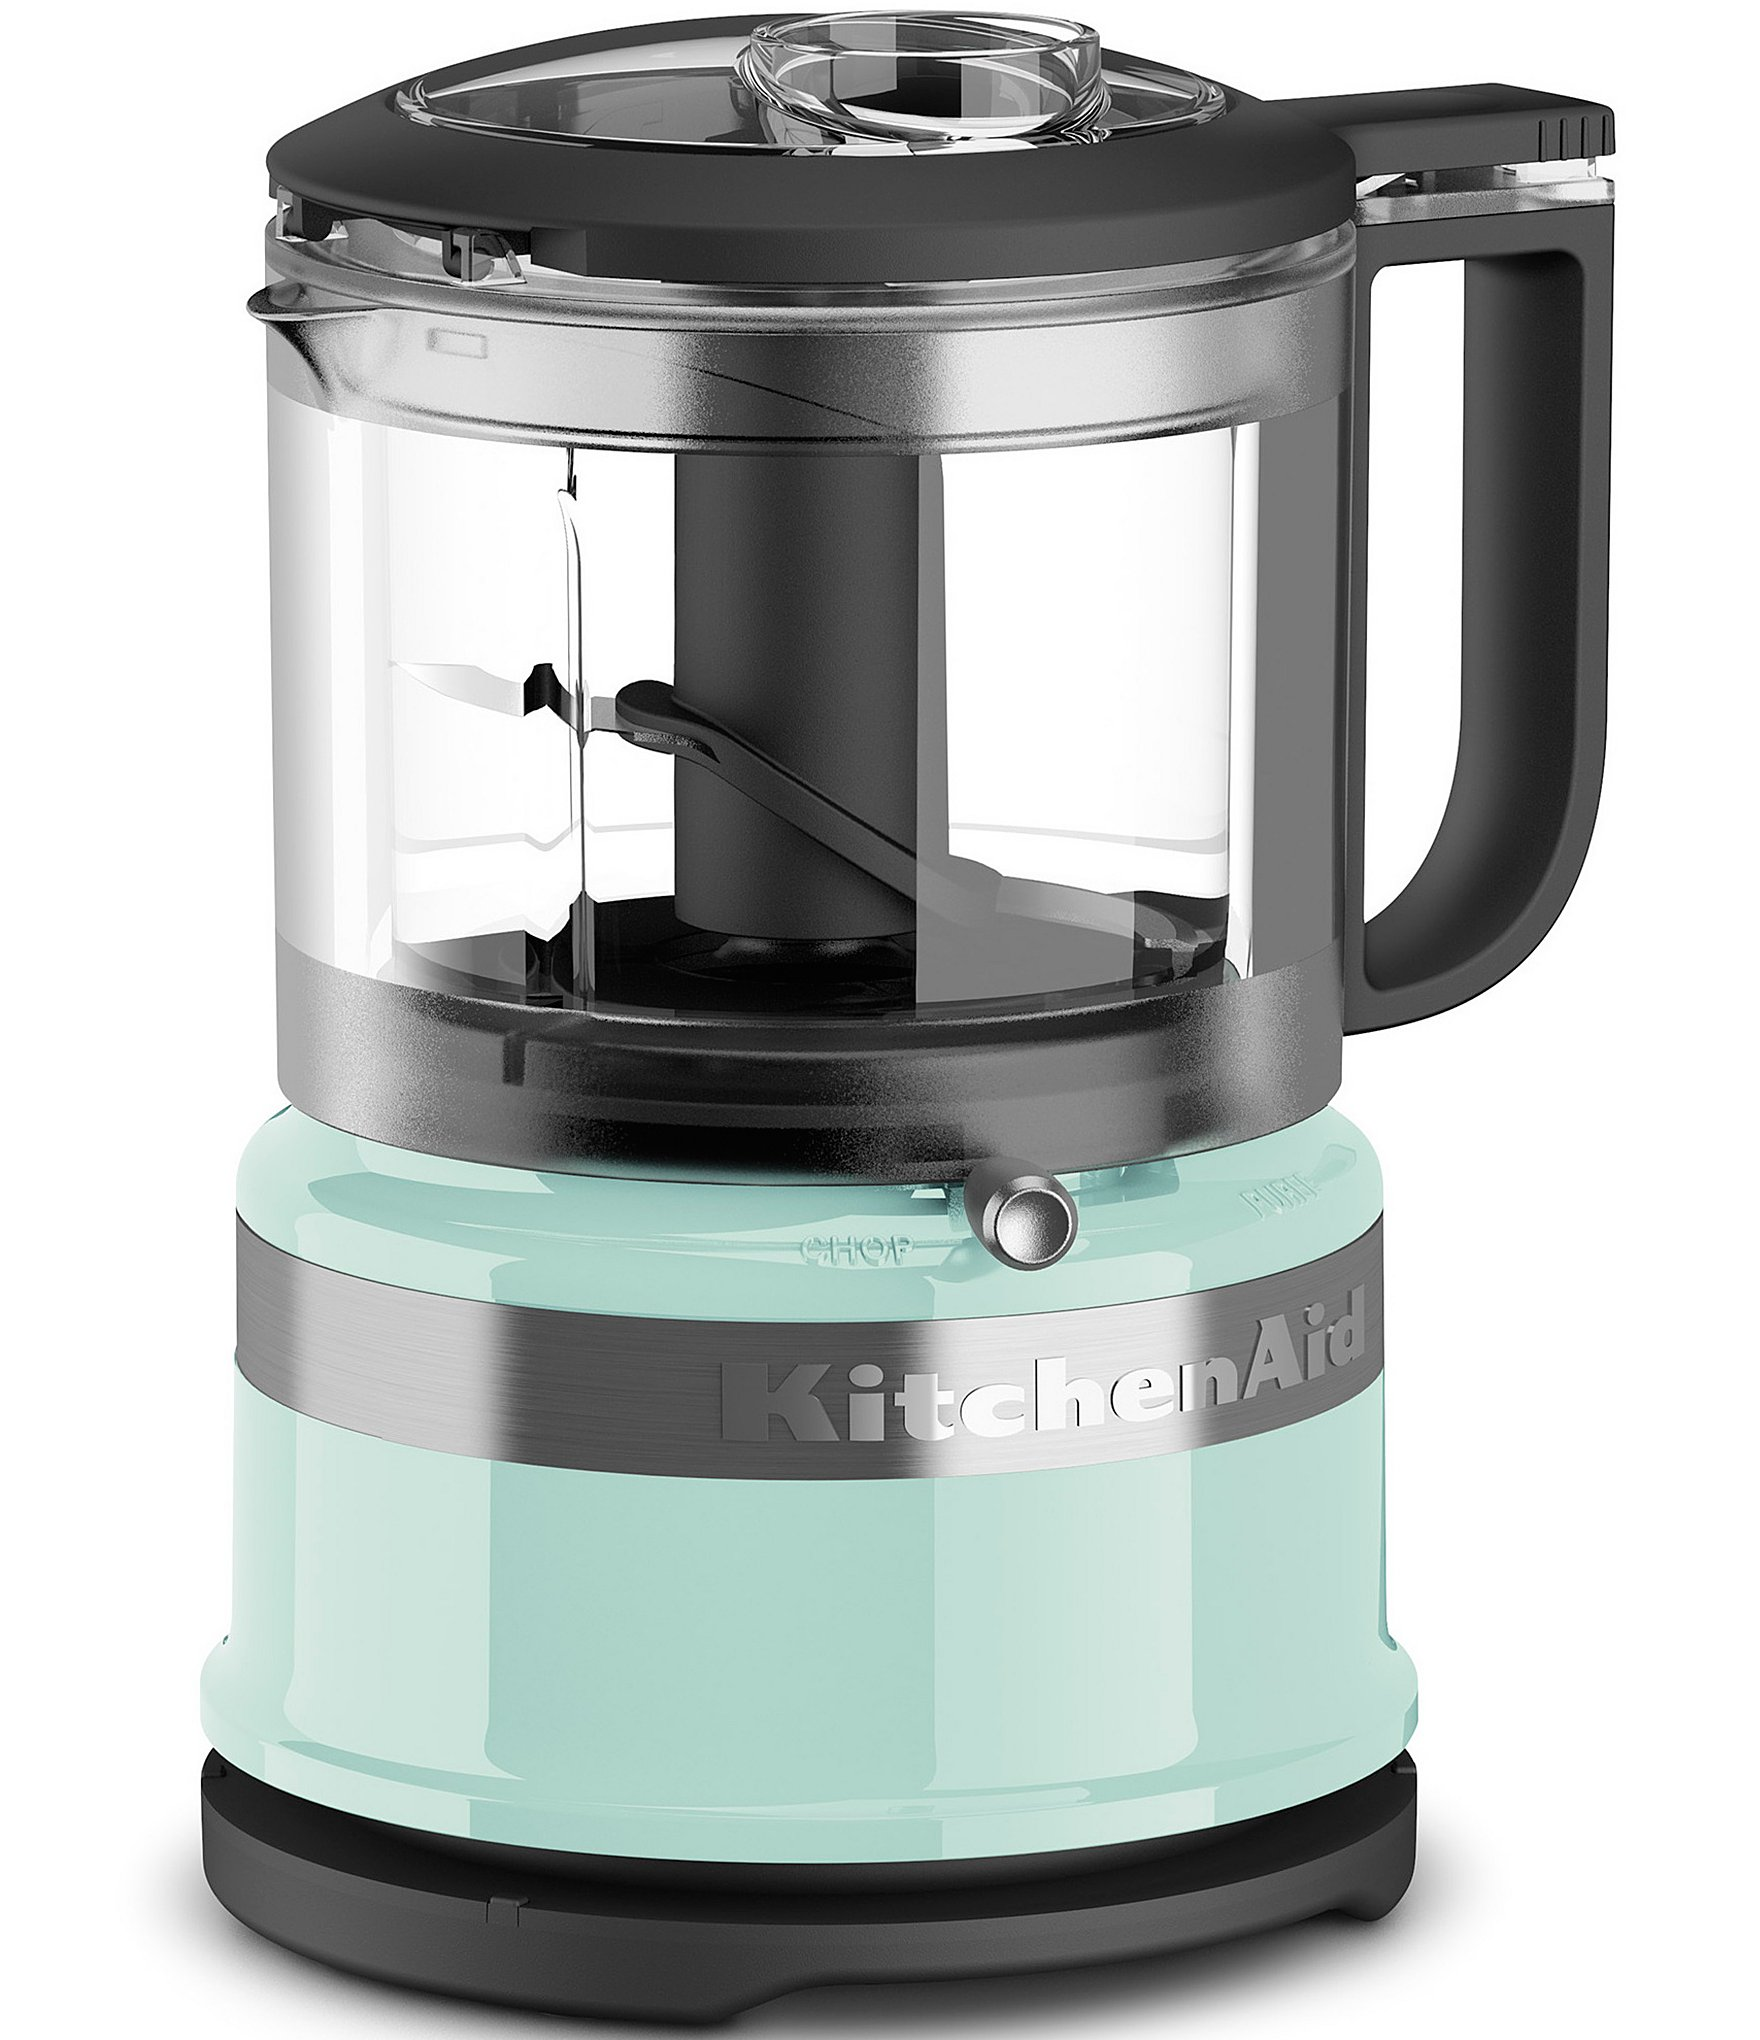 Kitchen Aid Compact Food Processor